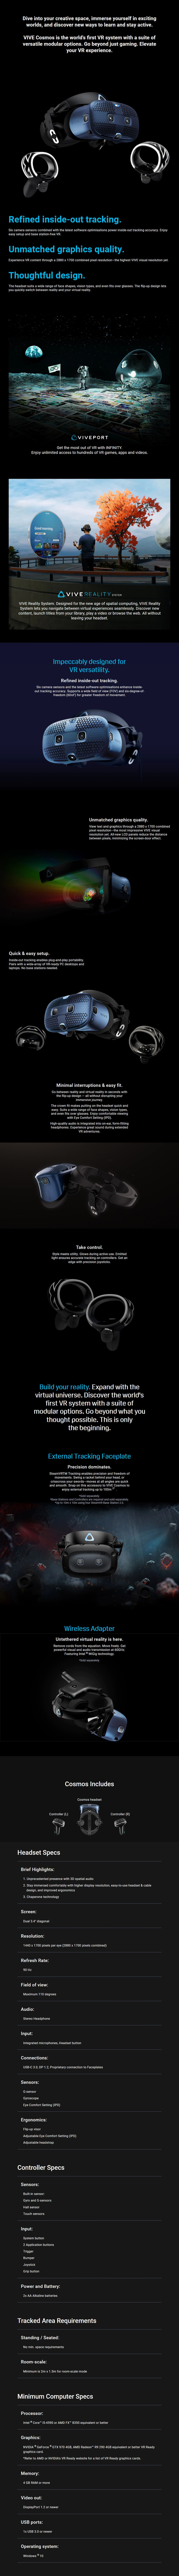 htc_vive_cosmos_virtual_reality_kit_with_link_box_ac39532.jpg